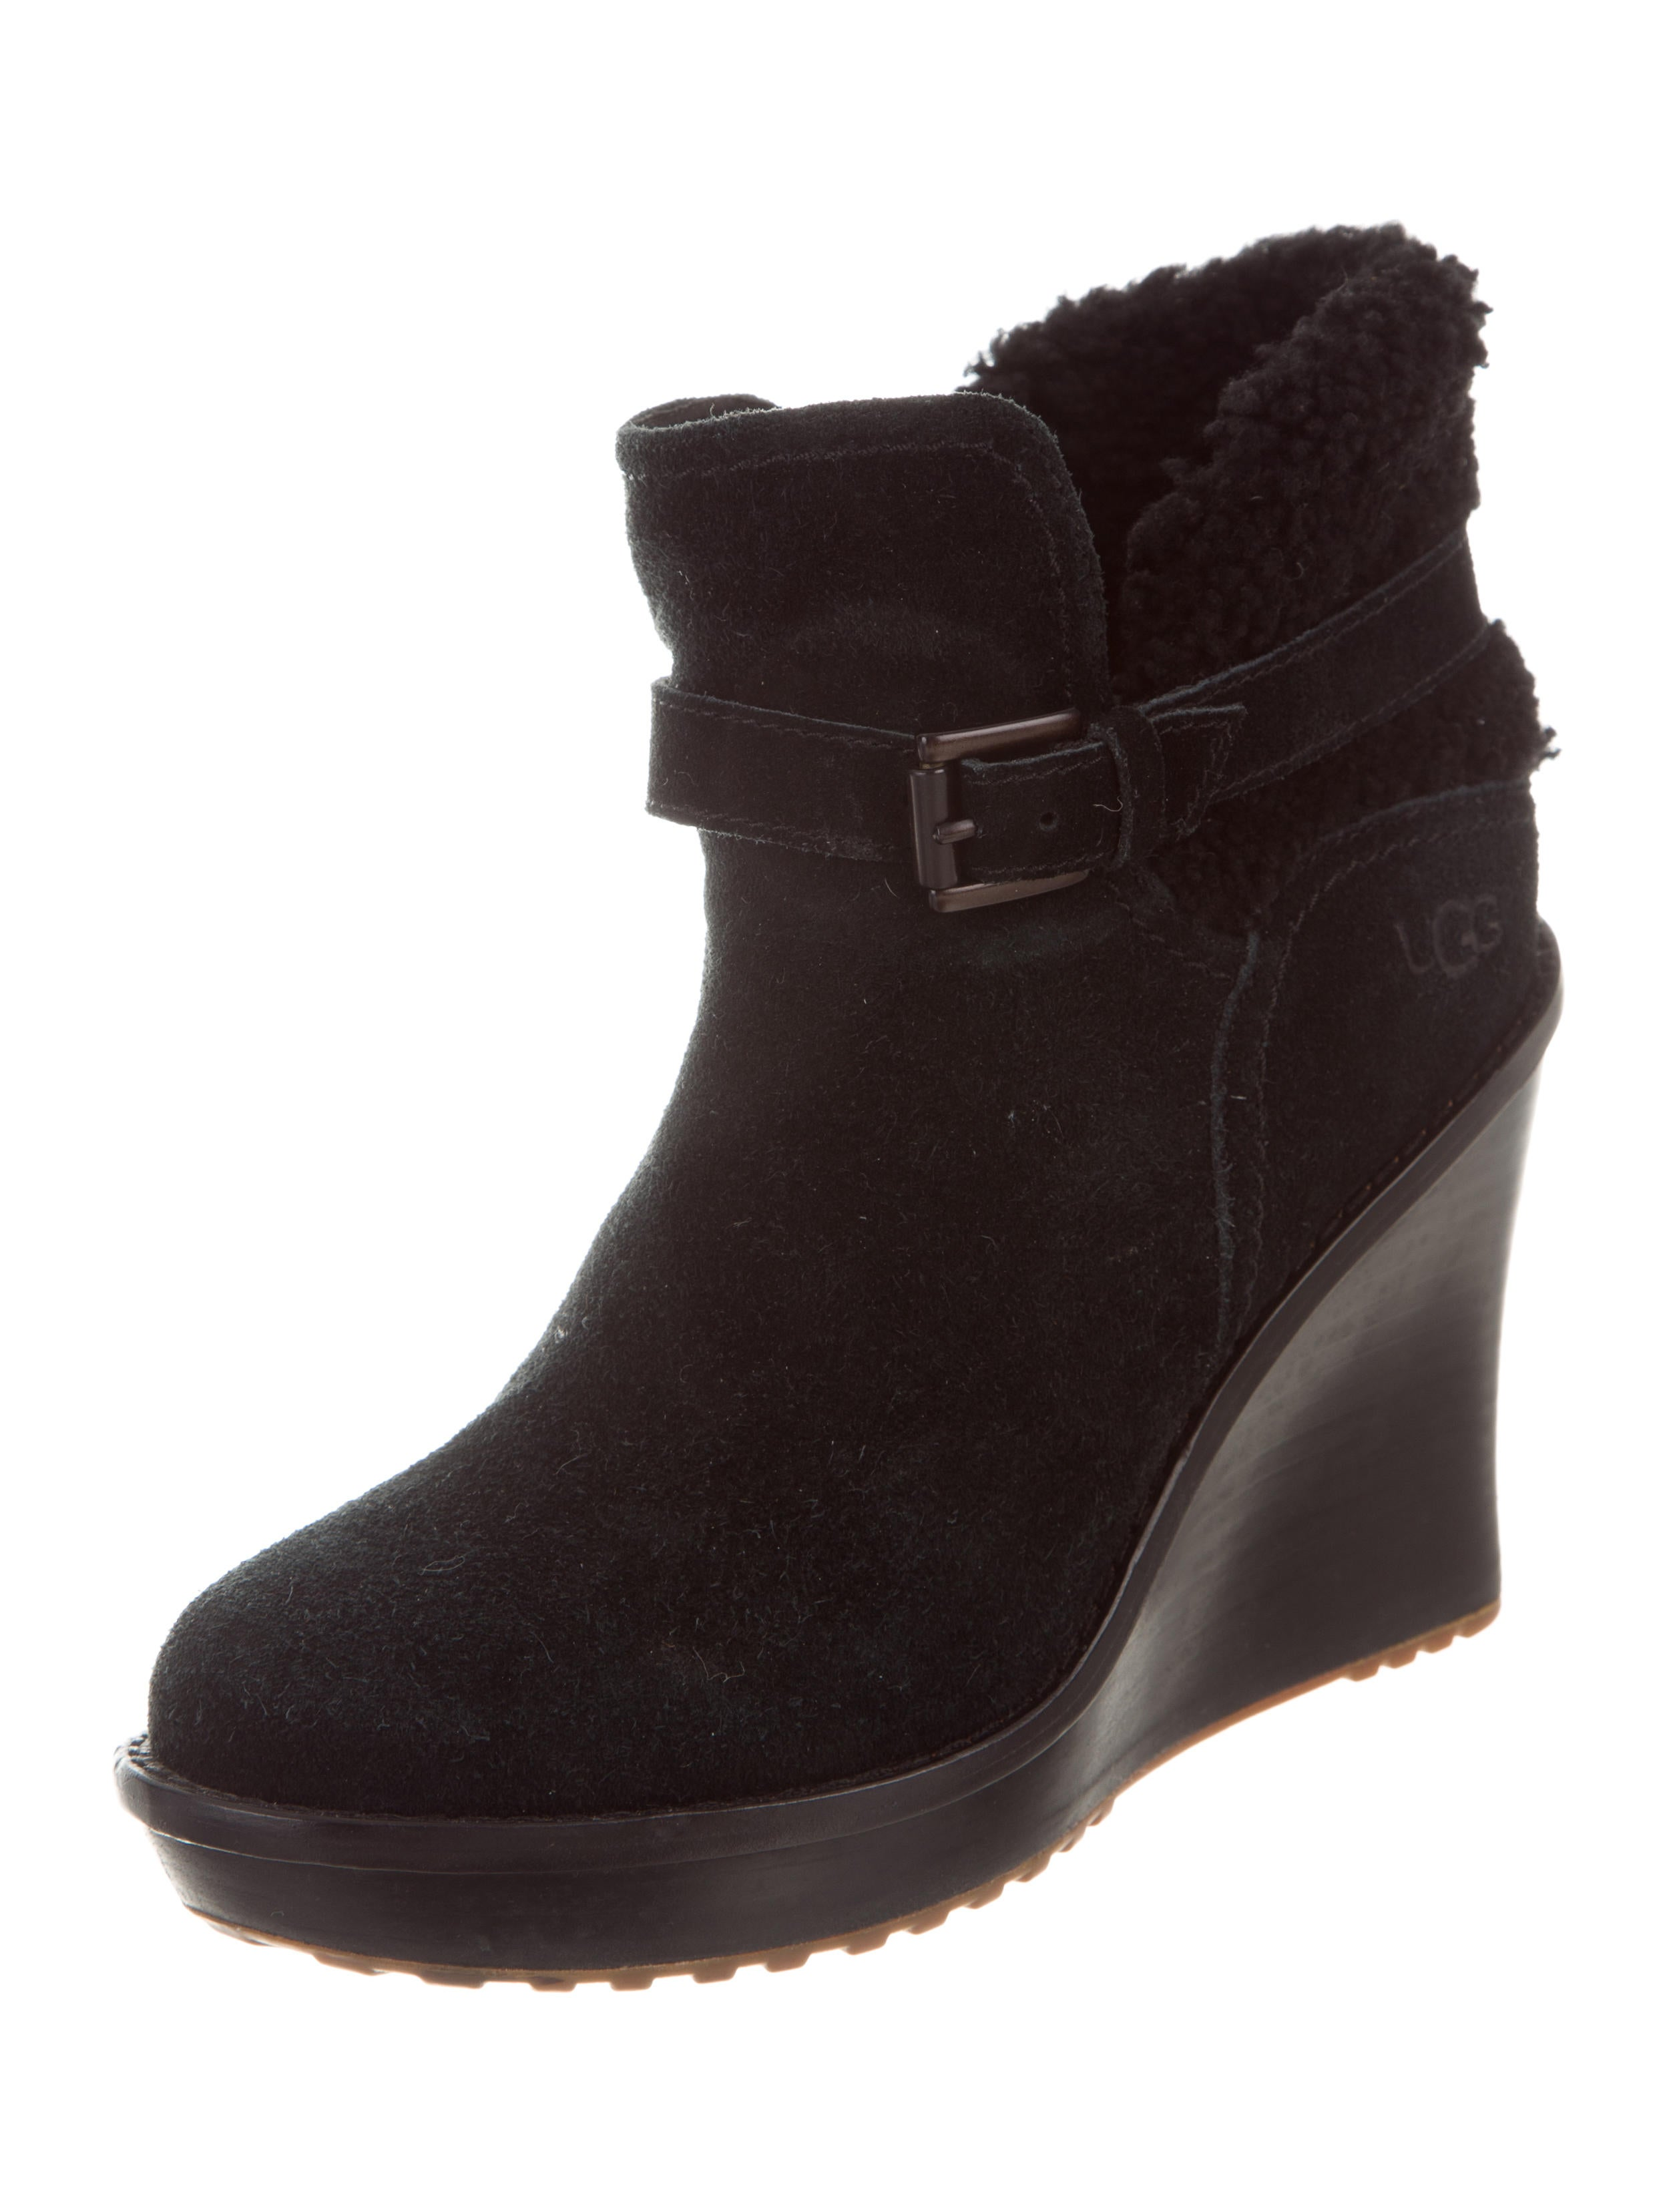 ugg australia shearling trimmed wedge boots shoes